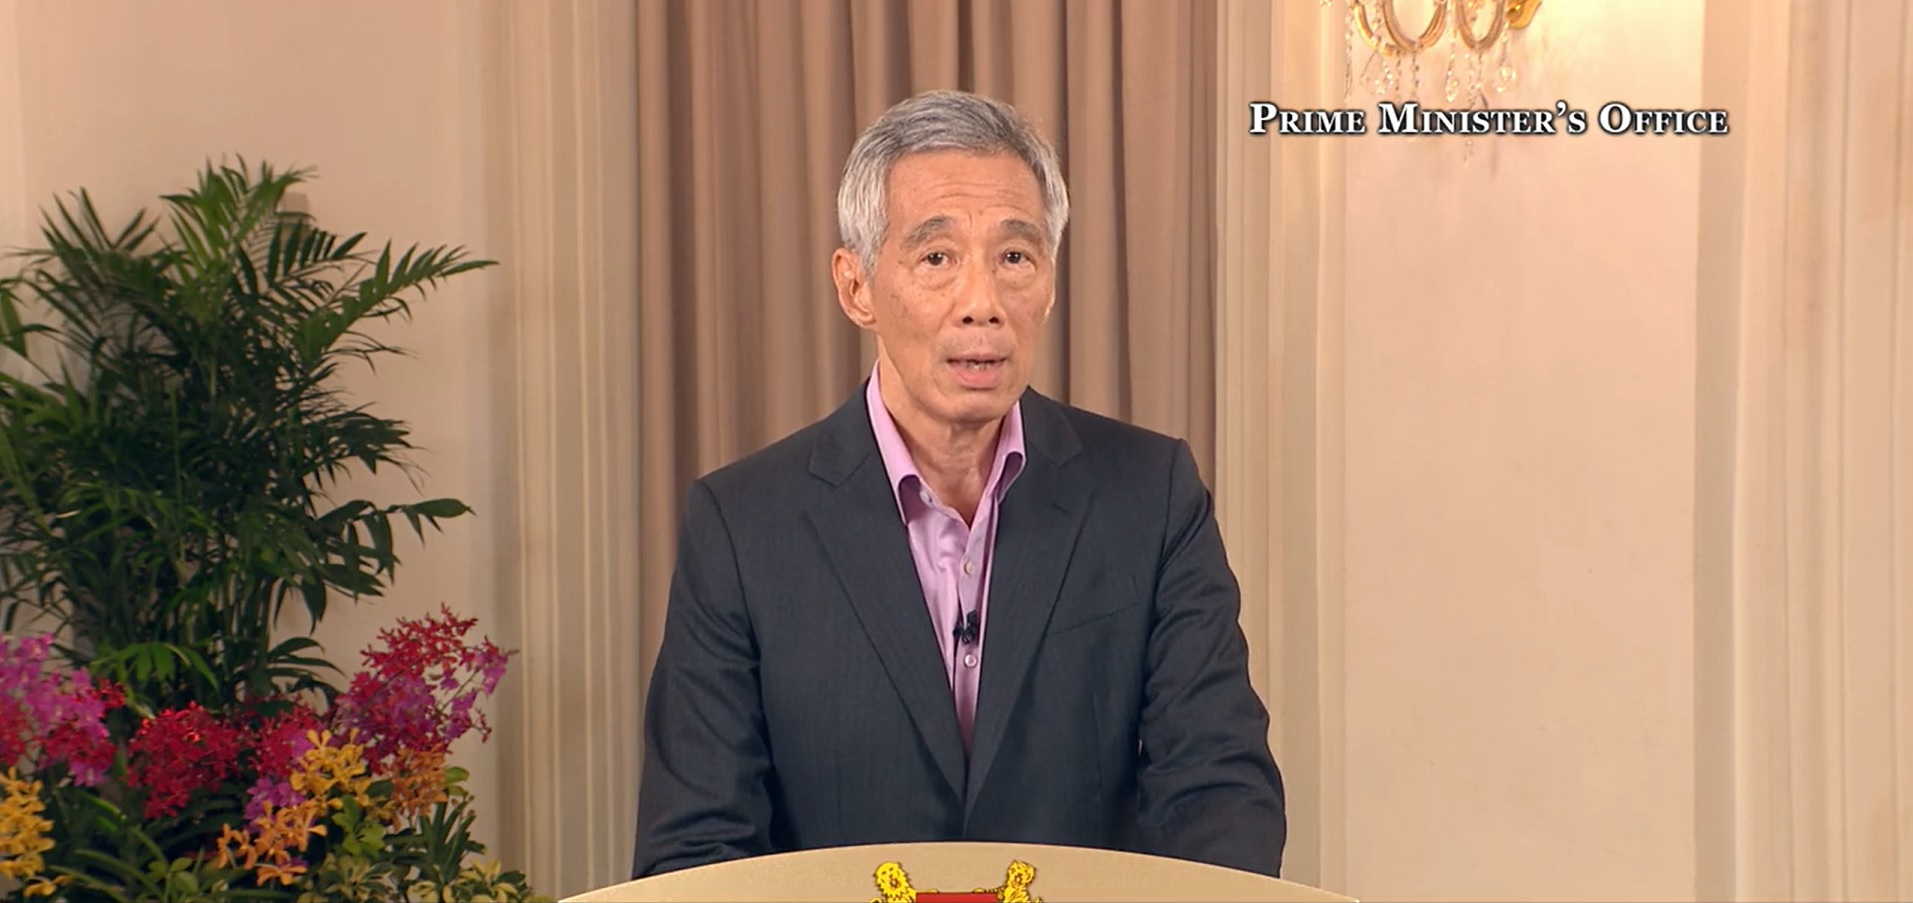 PM Lee addressing the nation on bringing the COVID-19 outbreak under control. Screenshot: Facebook/Lee Hsien Loong